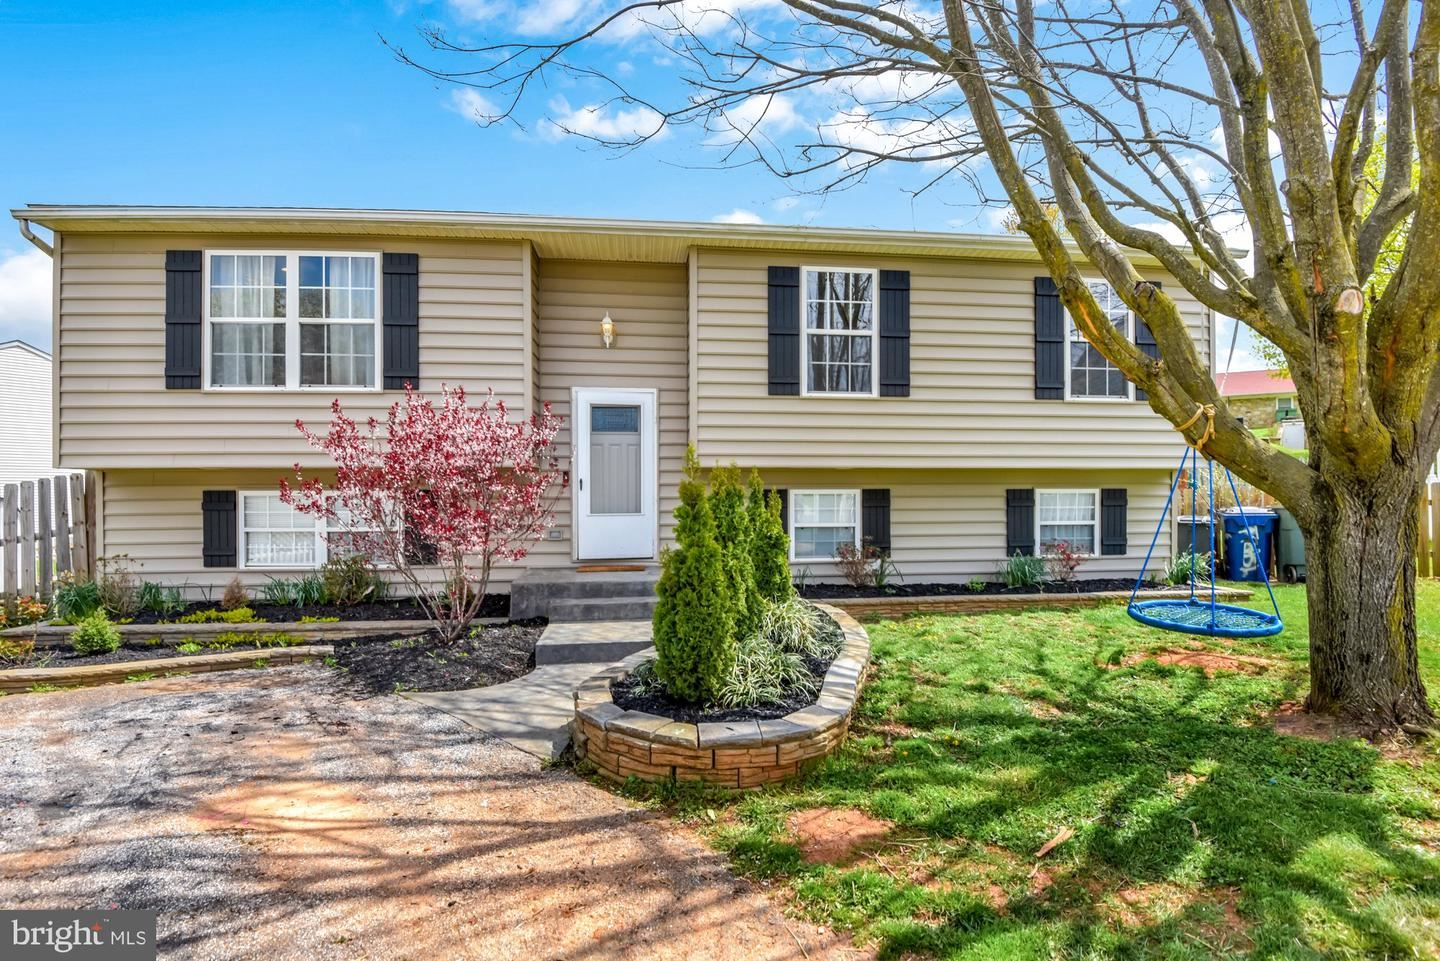 3321 SUTTON CT, Manchester, MD 21102 - MLS#: MDCR203700